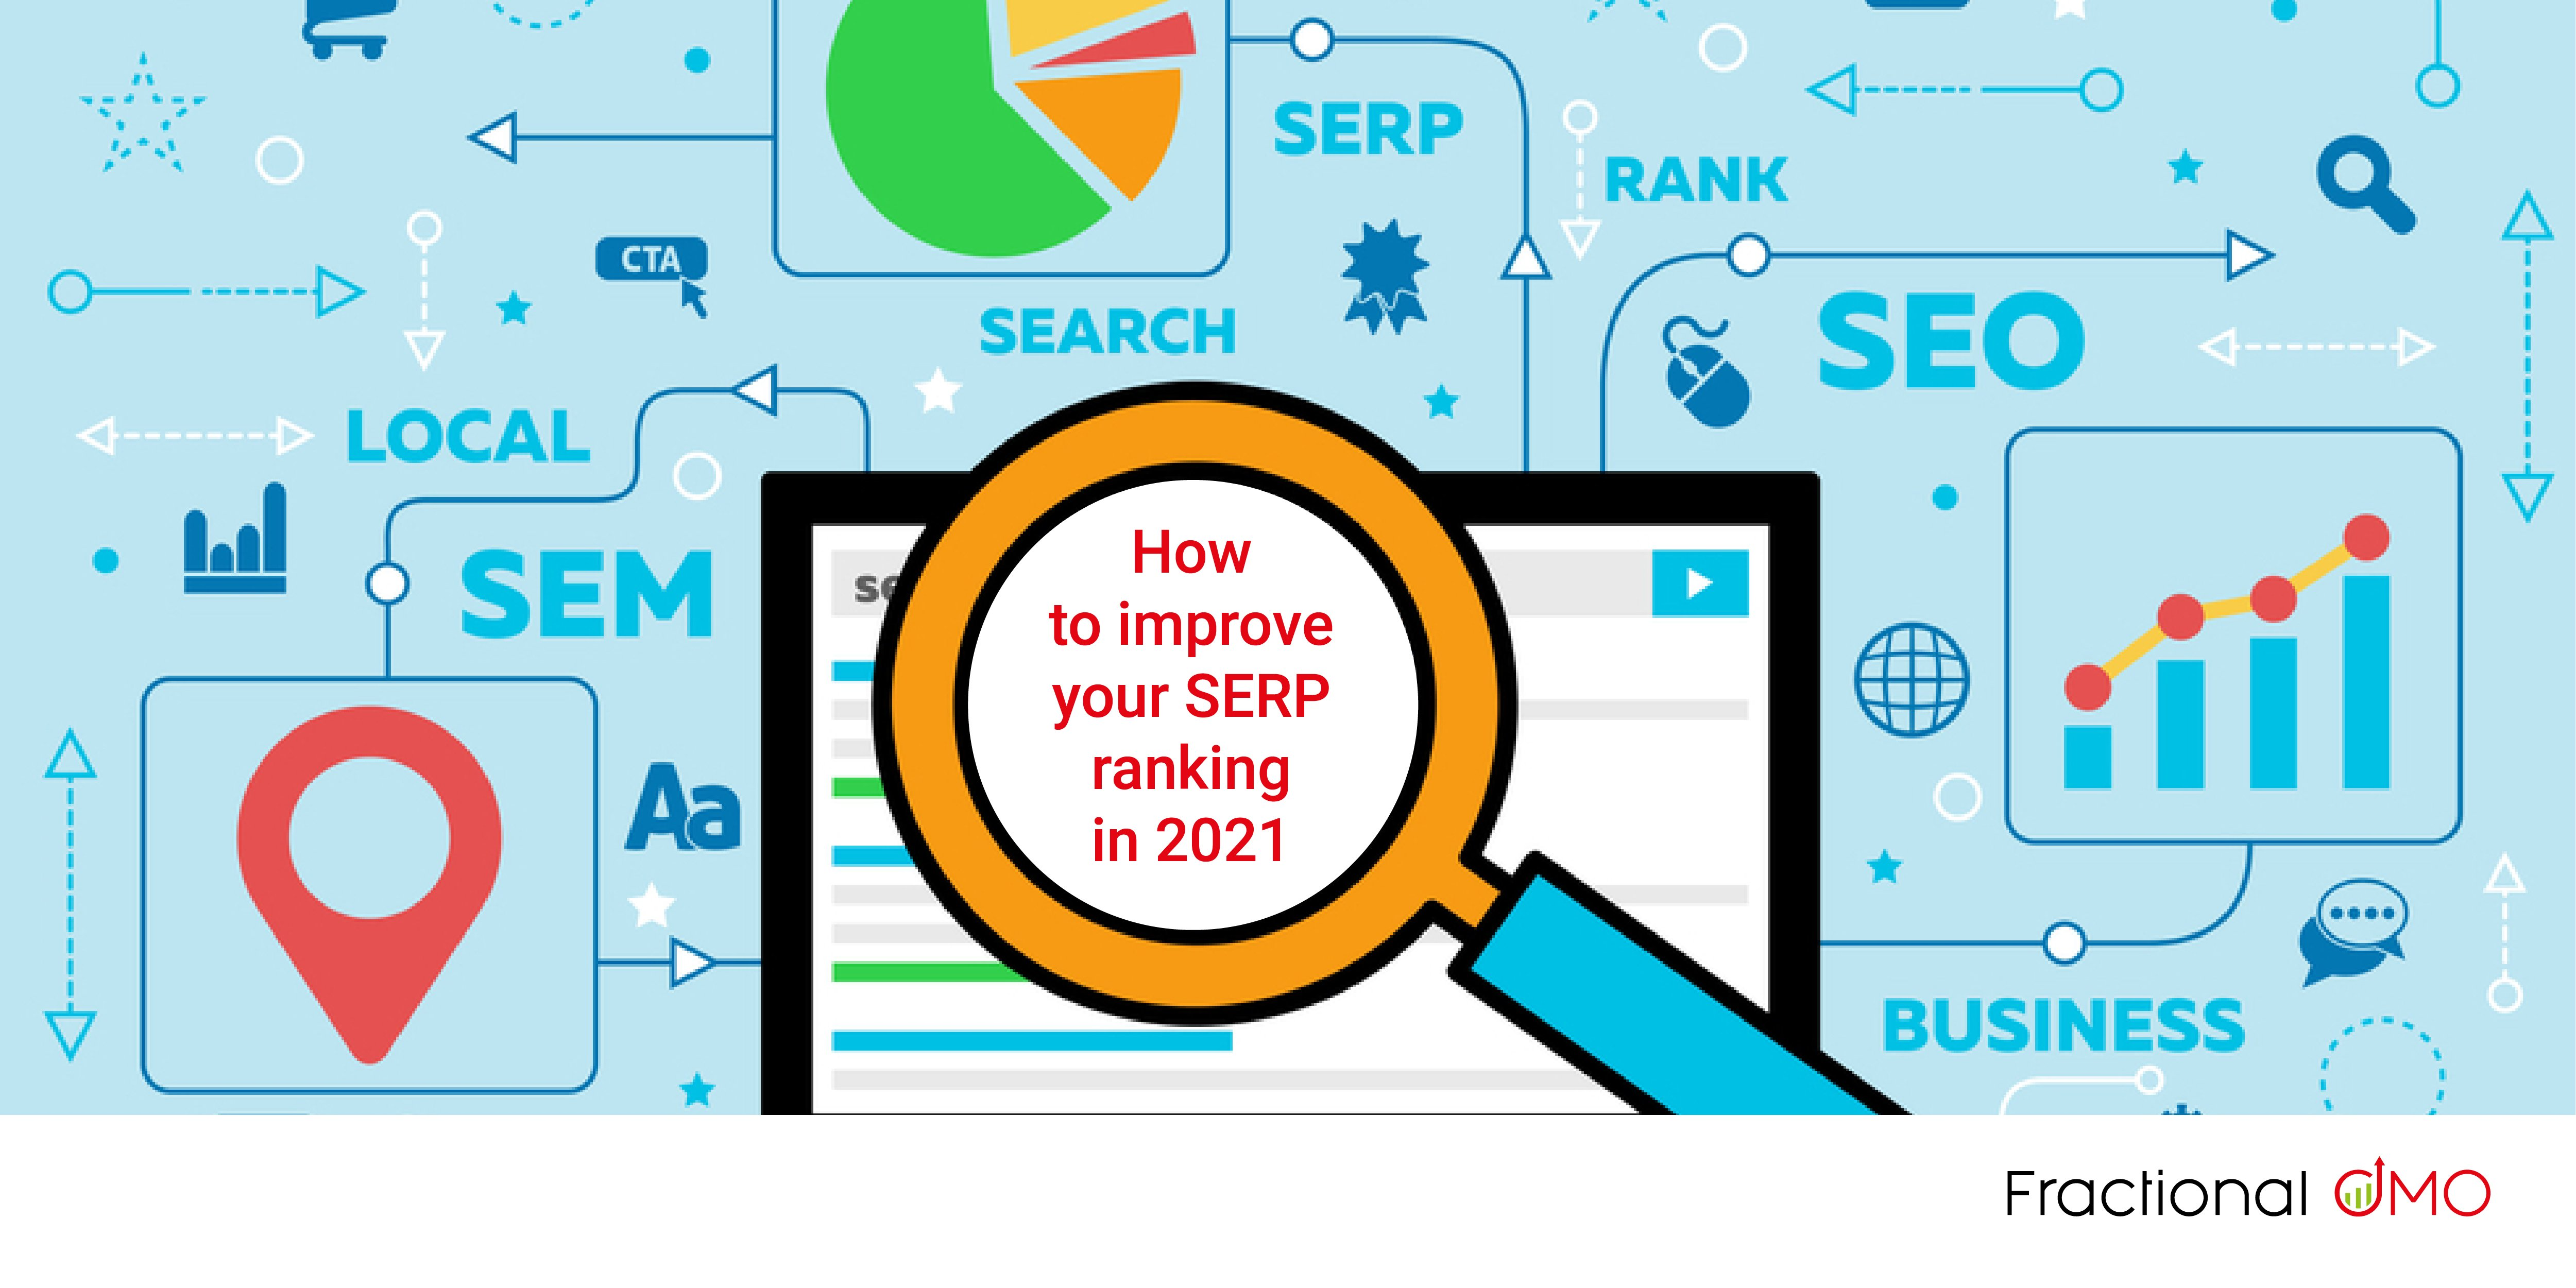 How to improve your SERP ranking in 2021